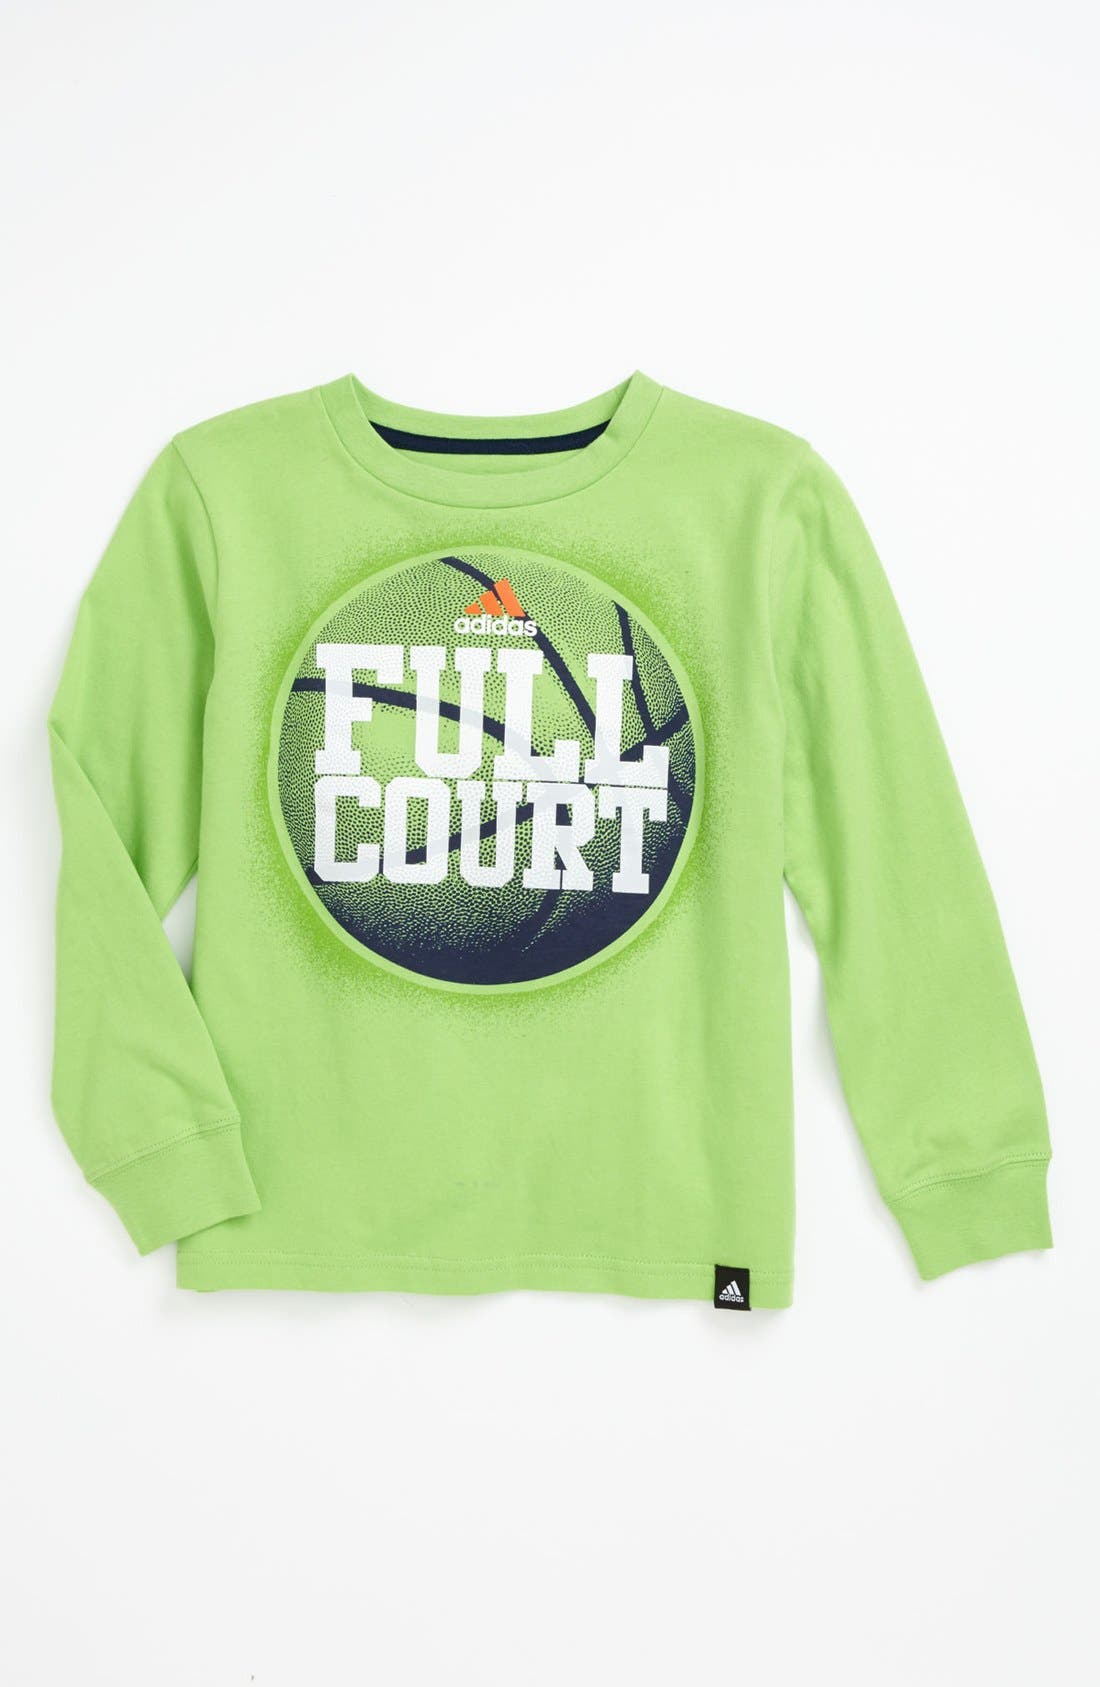 Main Image - adidas 'Full Court' Long Sleeve Tee (Little Boys)